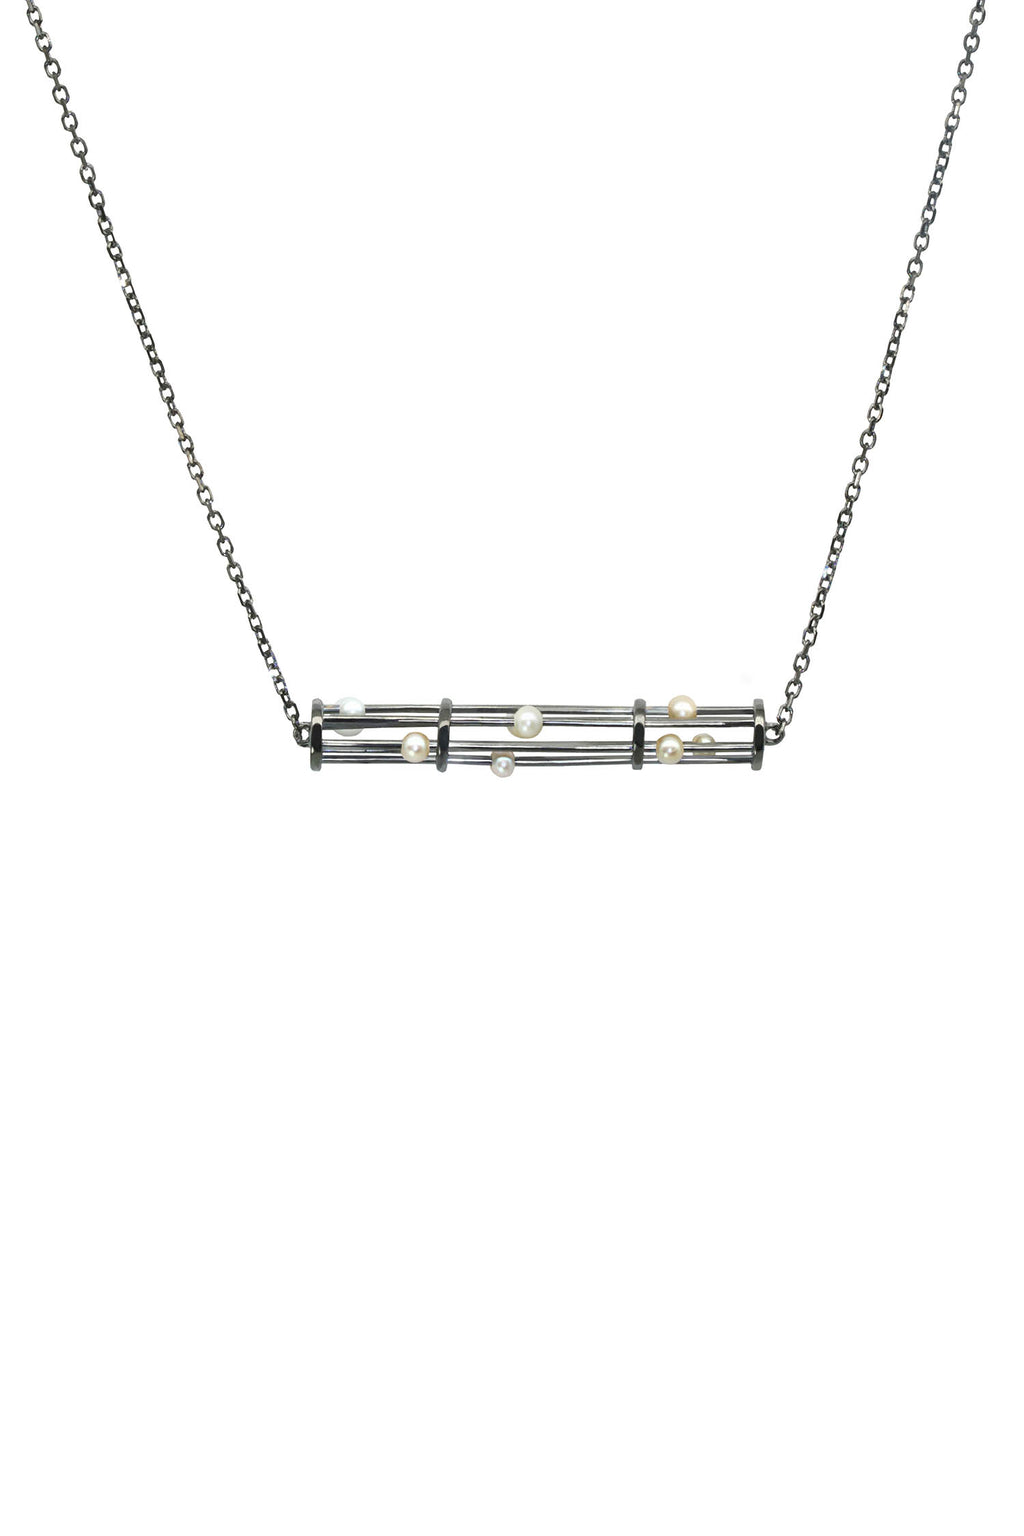 GRACE-H minimeter necklace